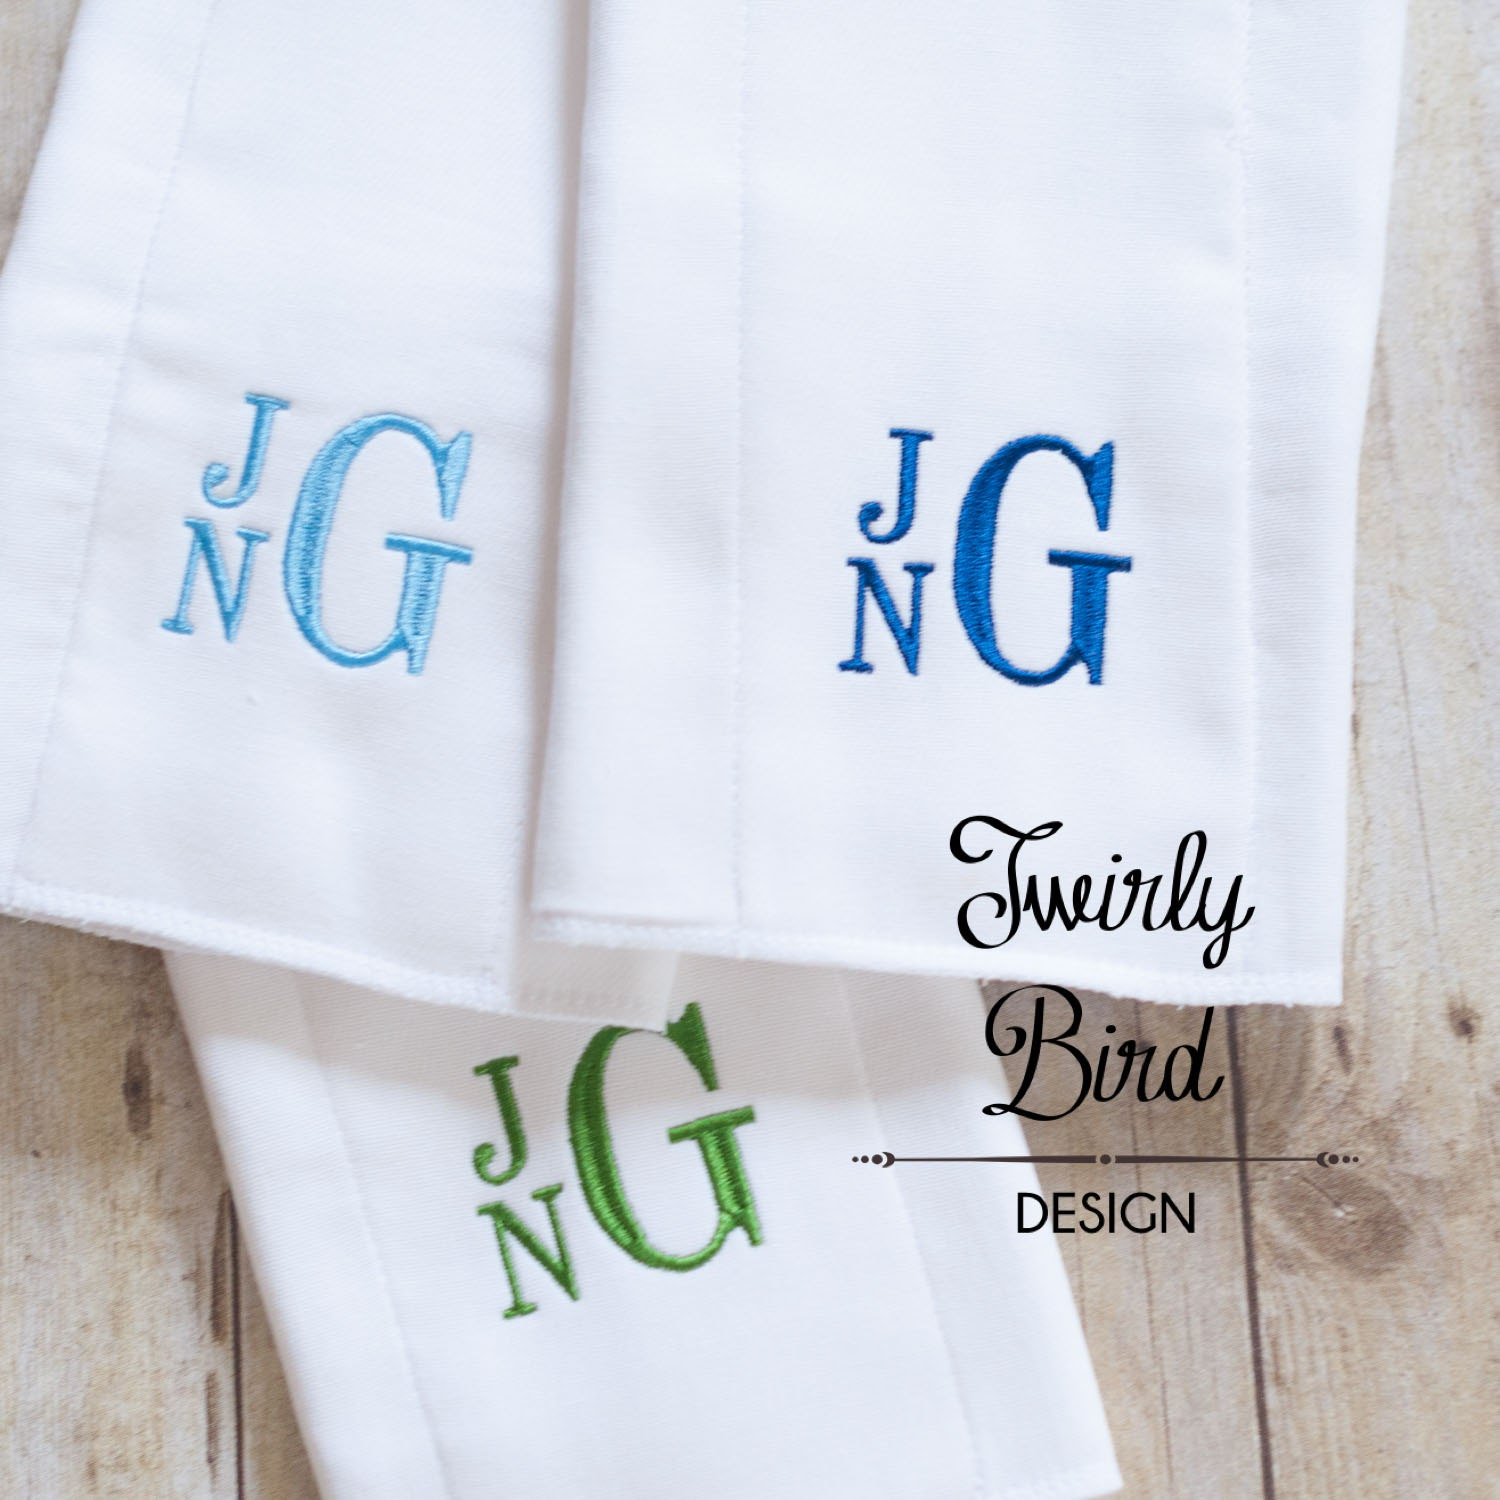 Burp cloths for boys baby shower gift monogrammed burp cloth burp cloths for boys baby shower gift monogrammed burp cloth personalized burp cloth baby burp cloths boy burp cloth stacked monogram negle Images